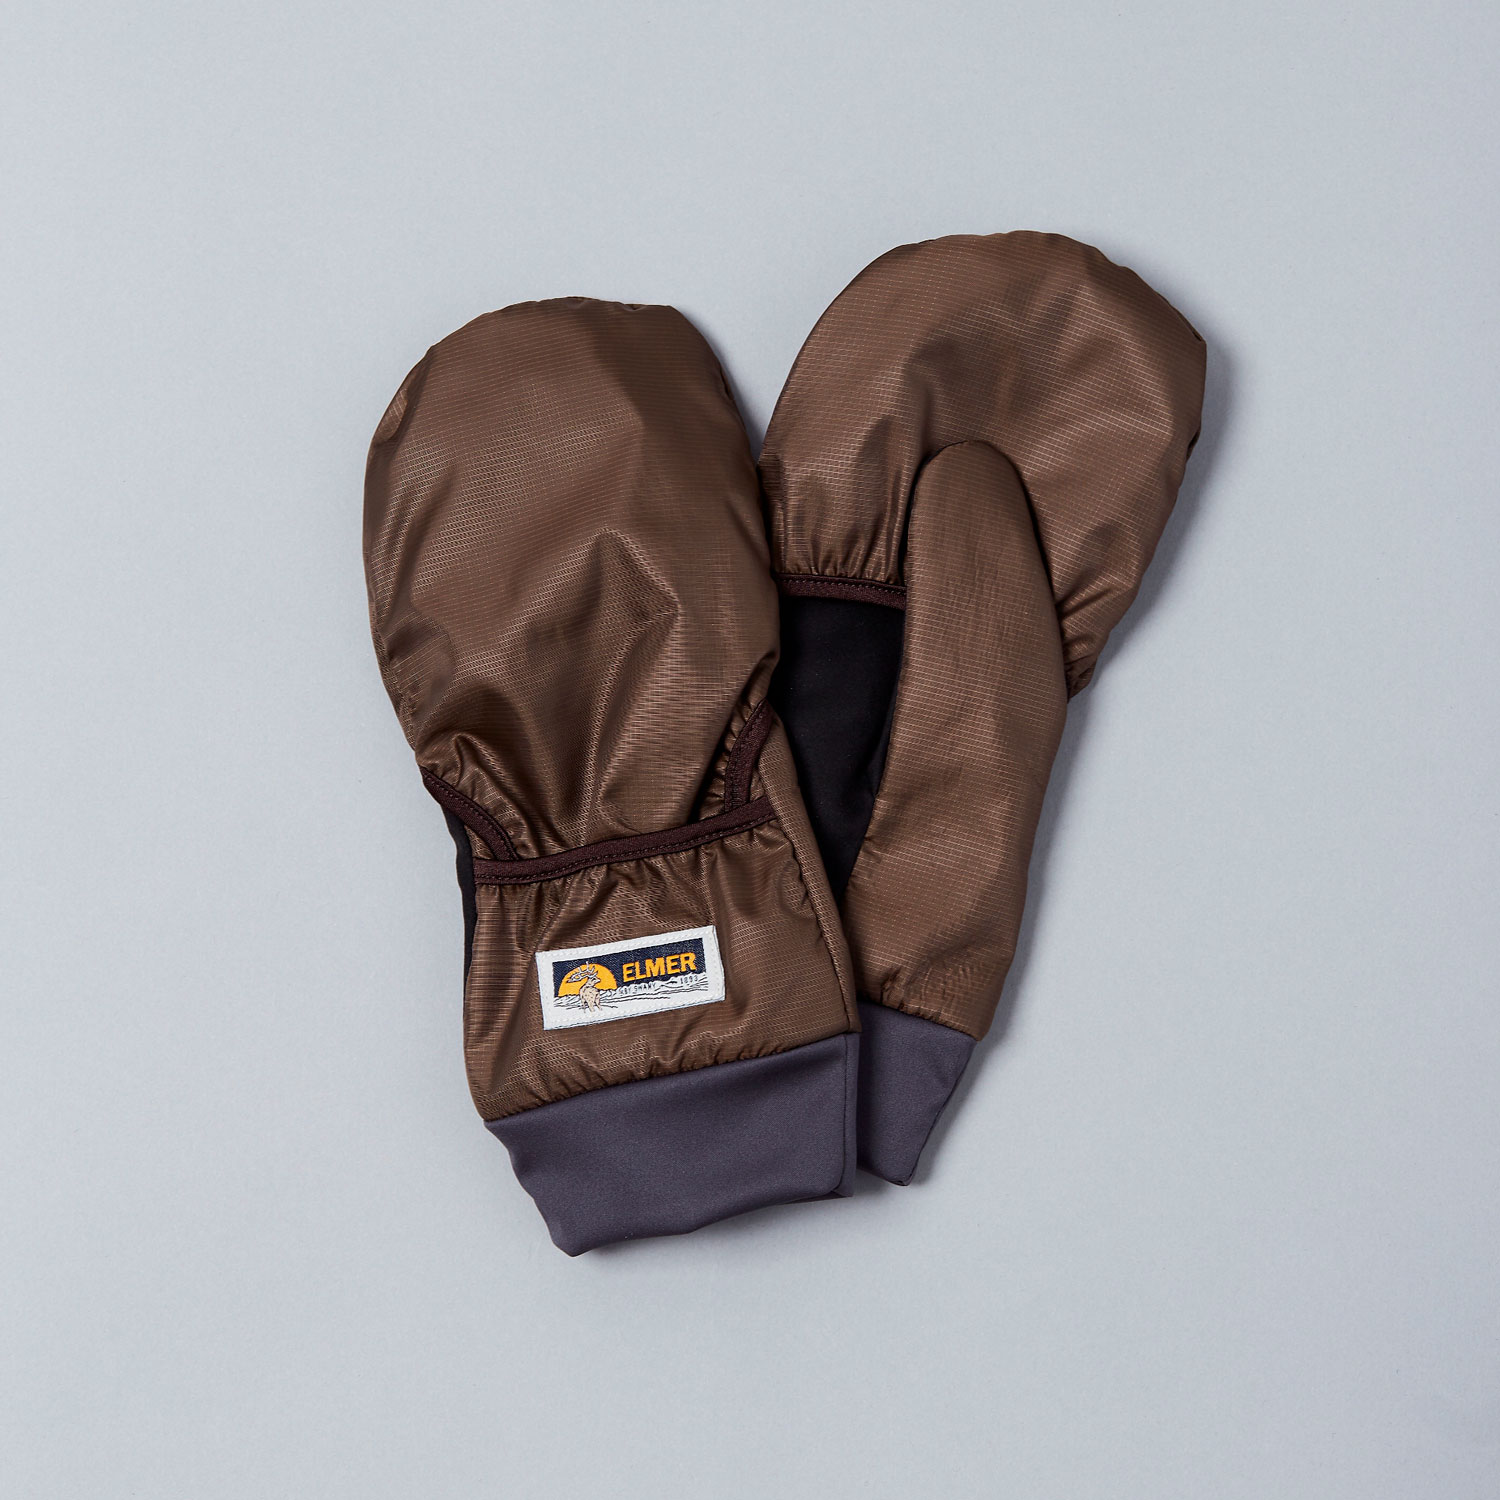 elmer-gloves-mittens-EM304-Brown-Khaki